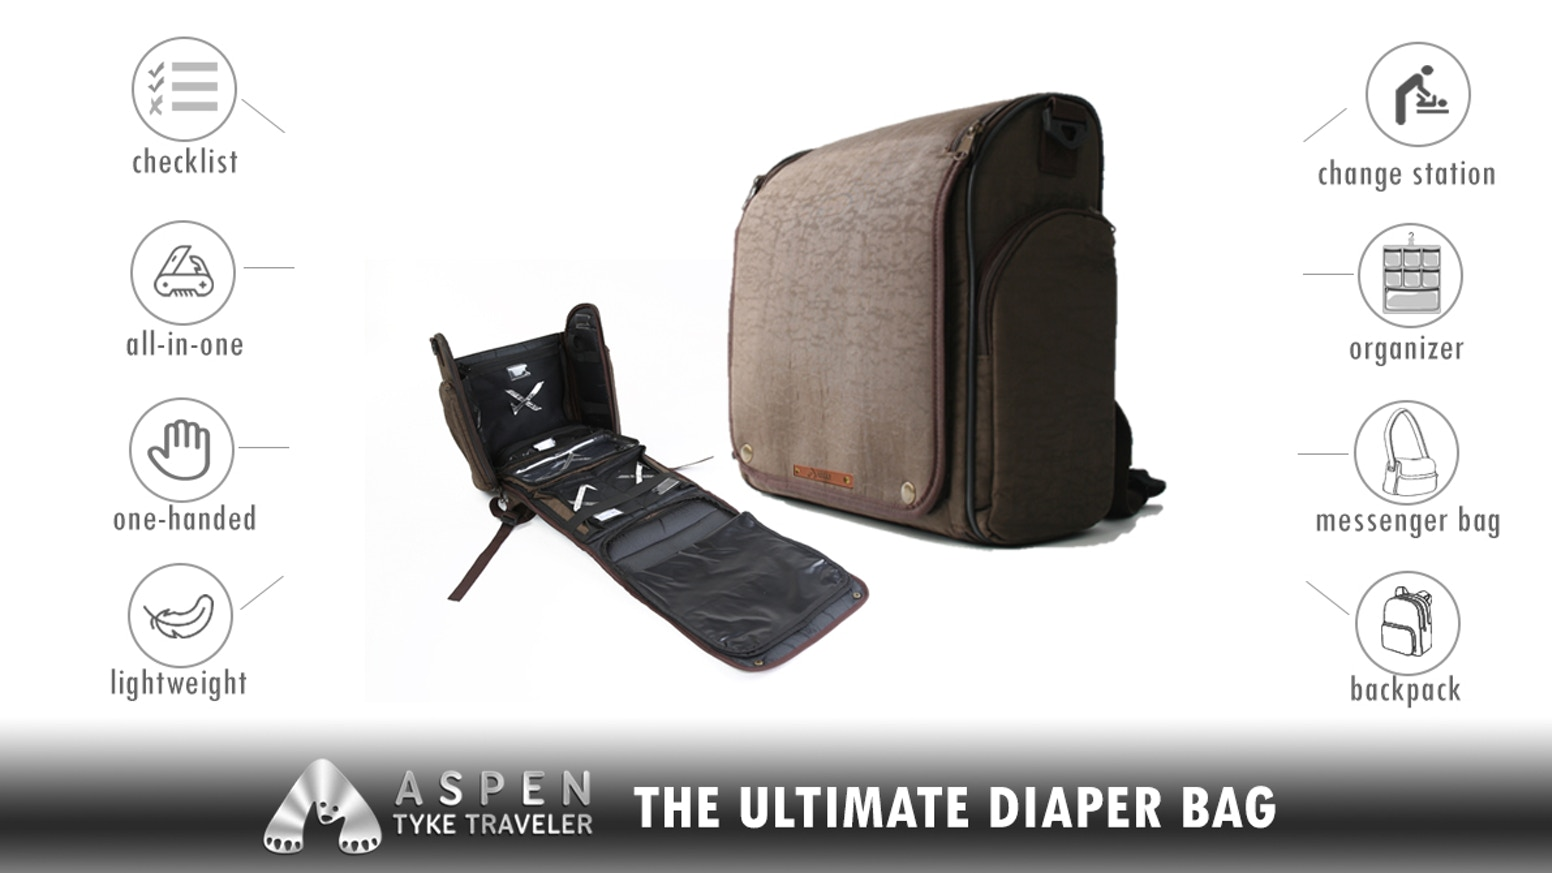 A Smart, Versatile, All-In-One Diaper Bag engineered to make on-the-go with baby more fun and less stress for Mom and Dad.